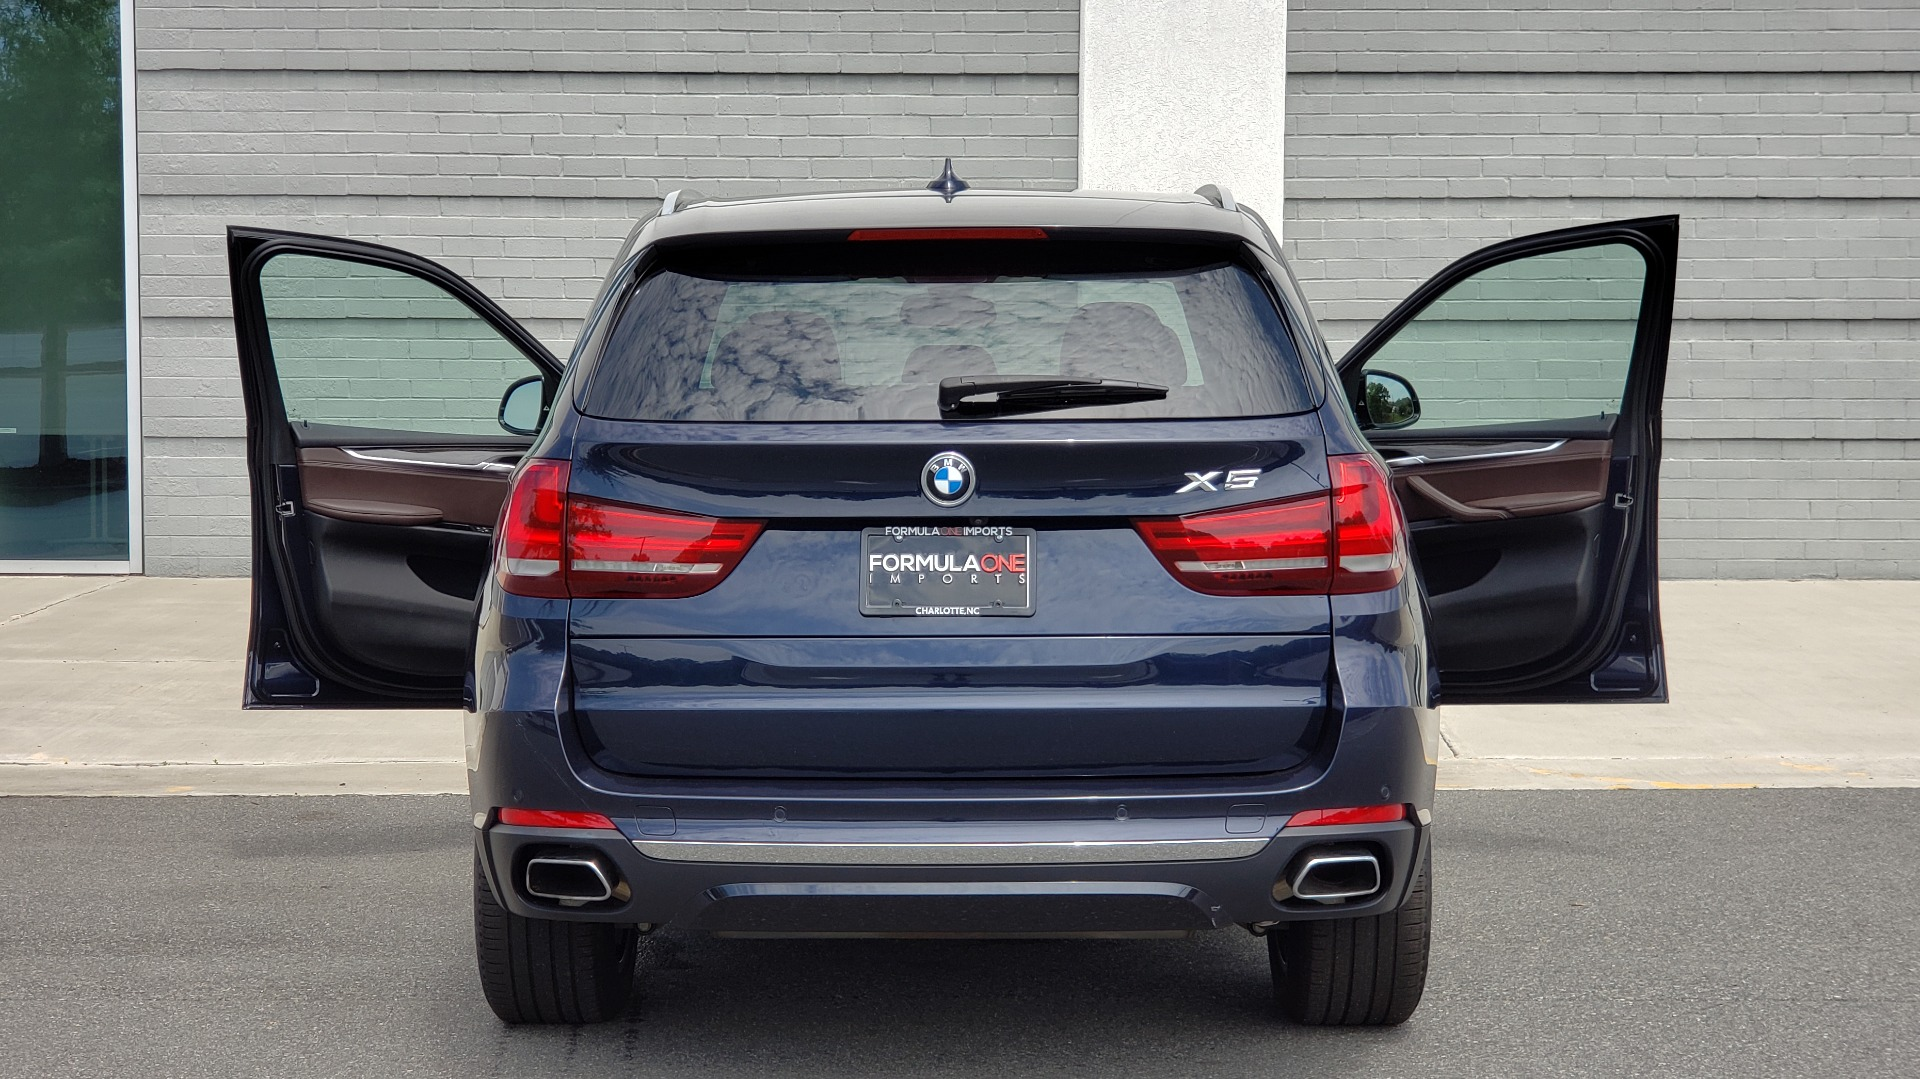 Used 2018 BMW X5 XDRIVE35I PREMIUM / LUXURY / DRVR ASST / HUD / LANE WARNING / REARVIEW for sale $43,695 at Formula Imports in Charlotte NC 28227 33